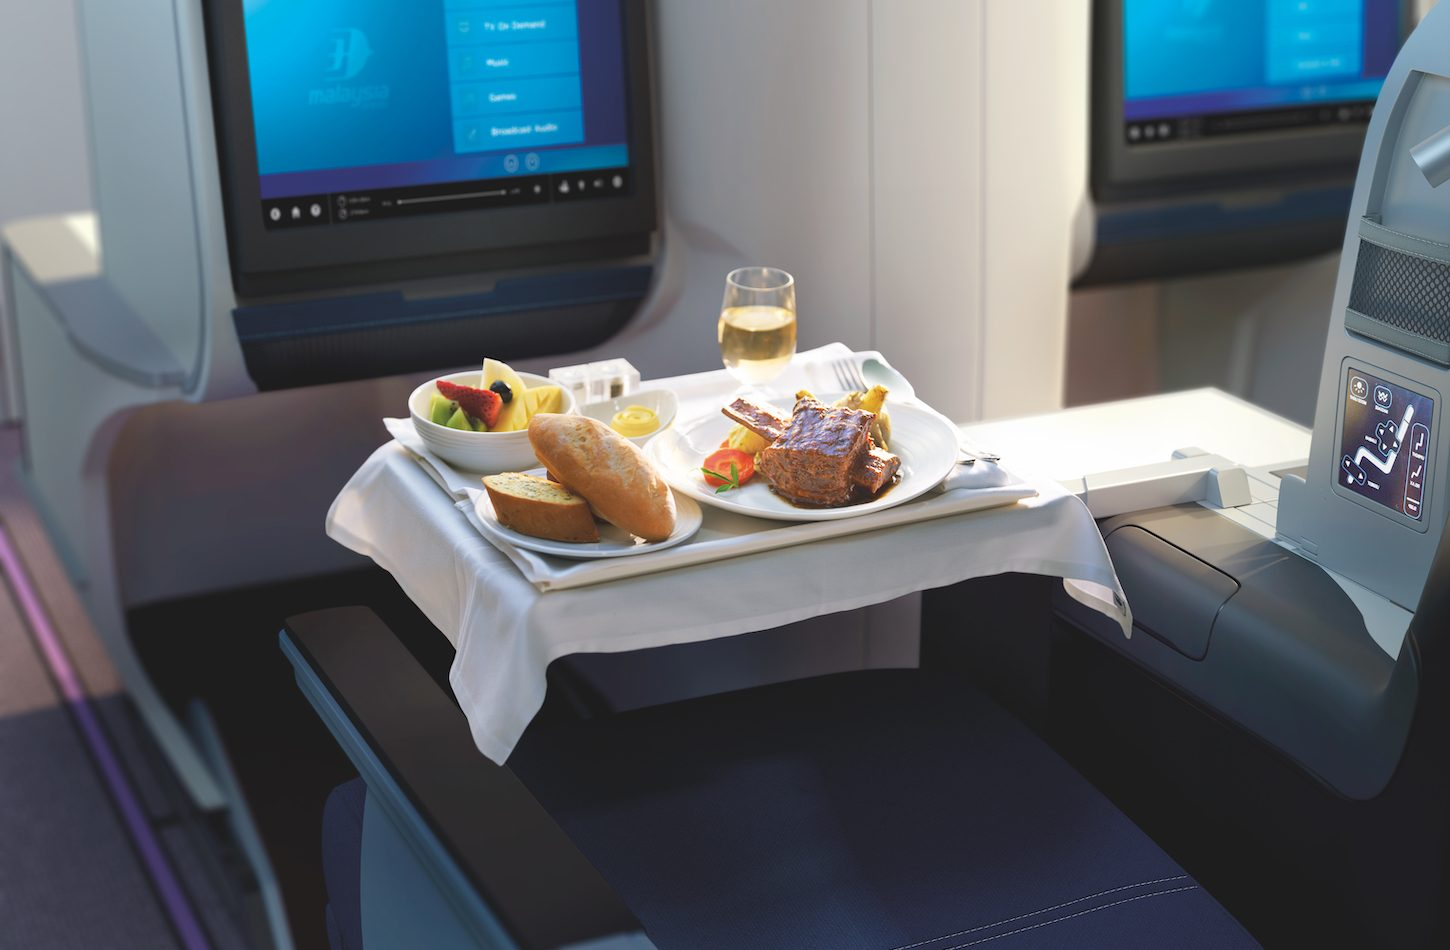 Malaysia Airlines Business Class food